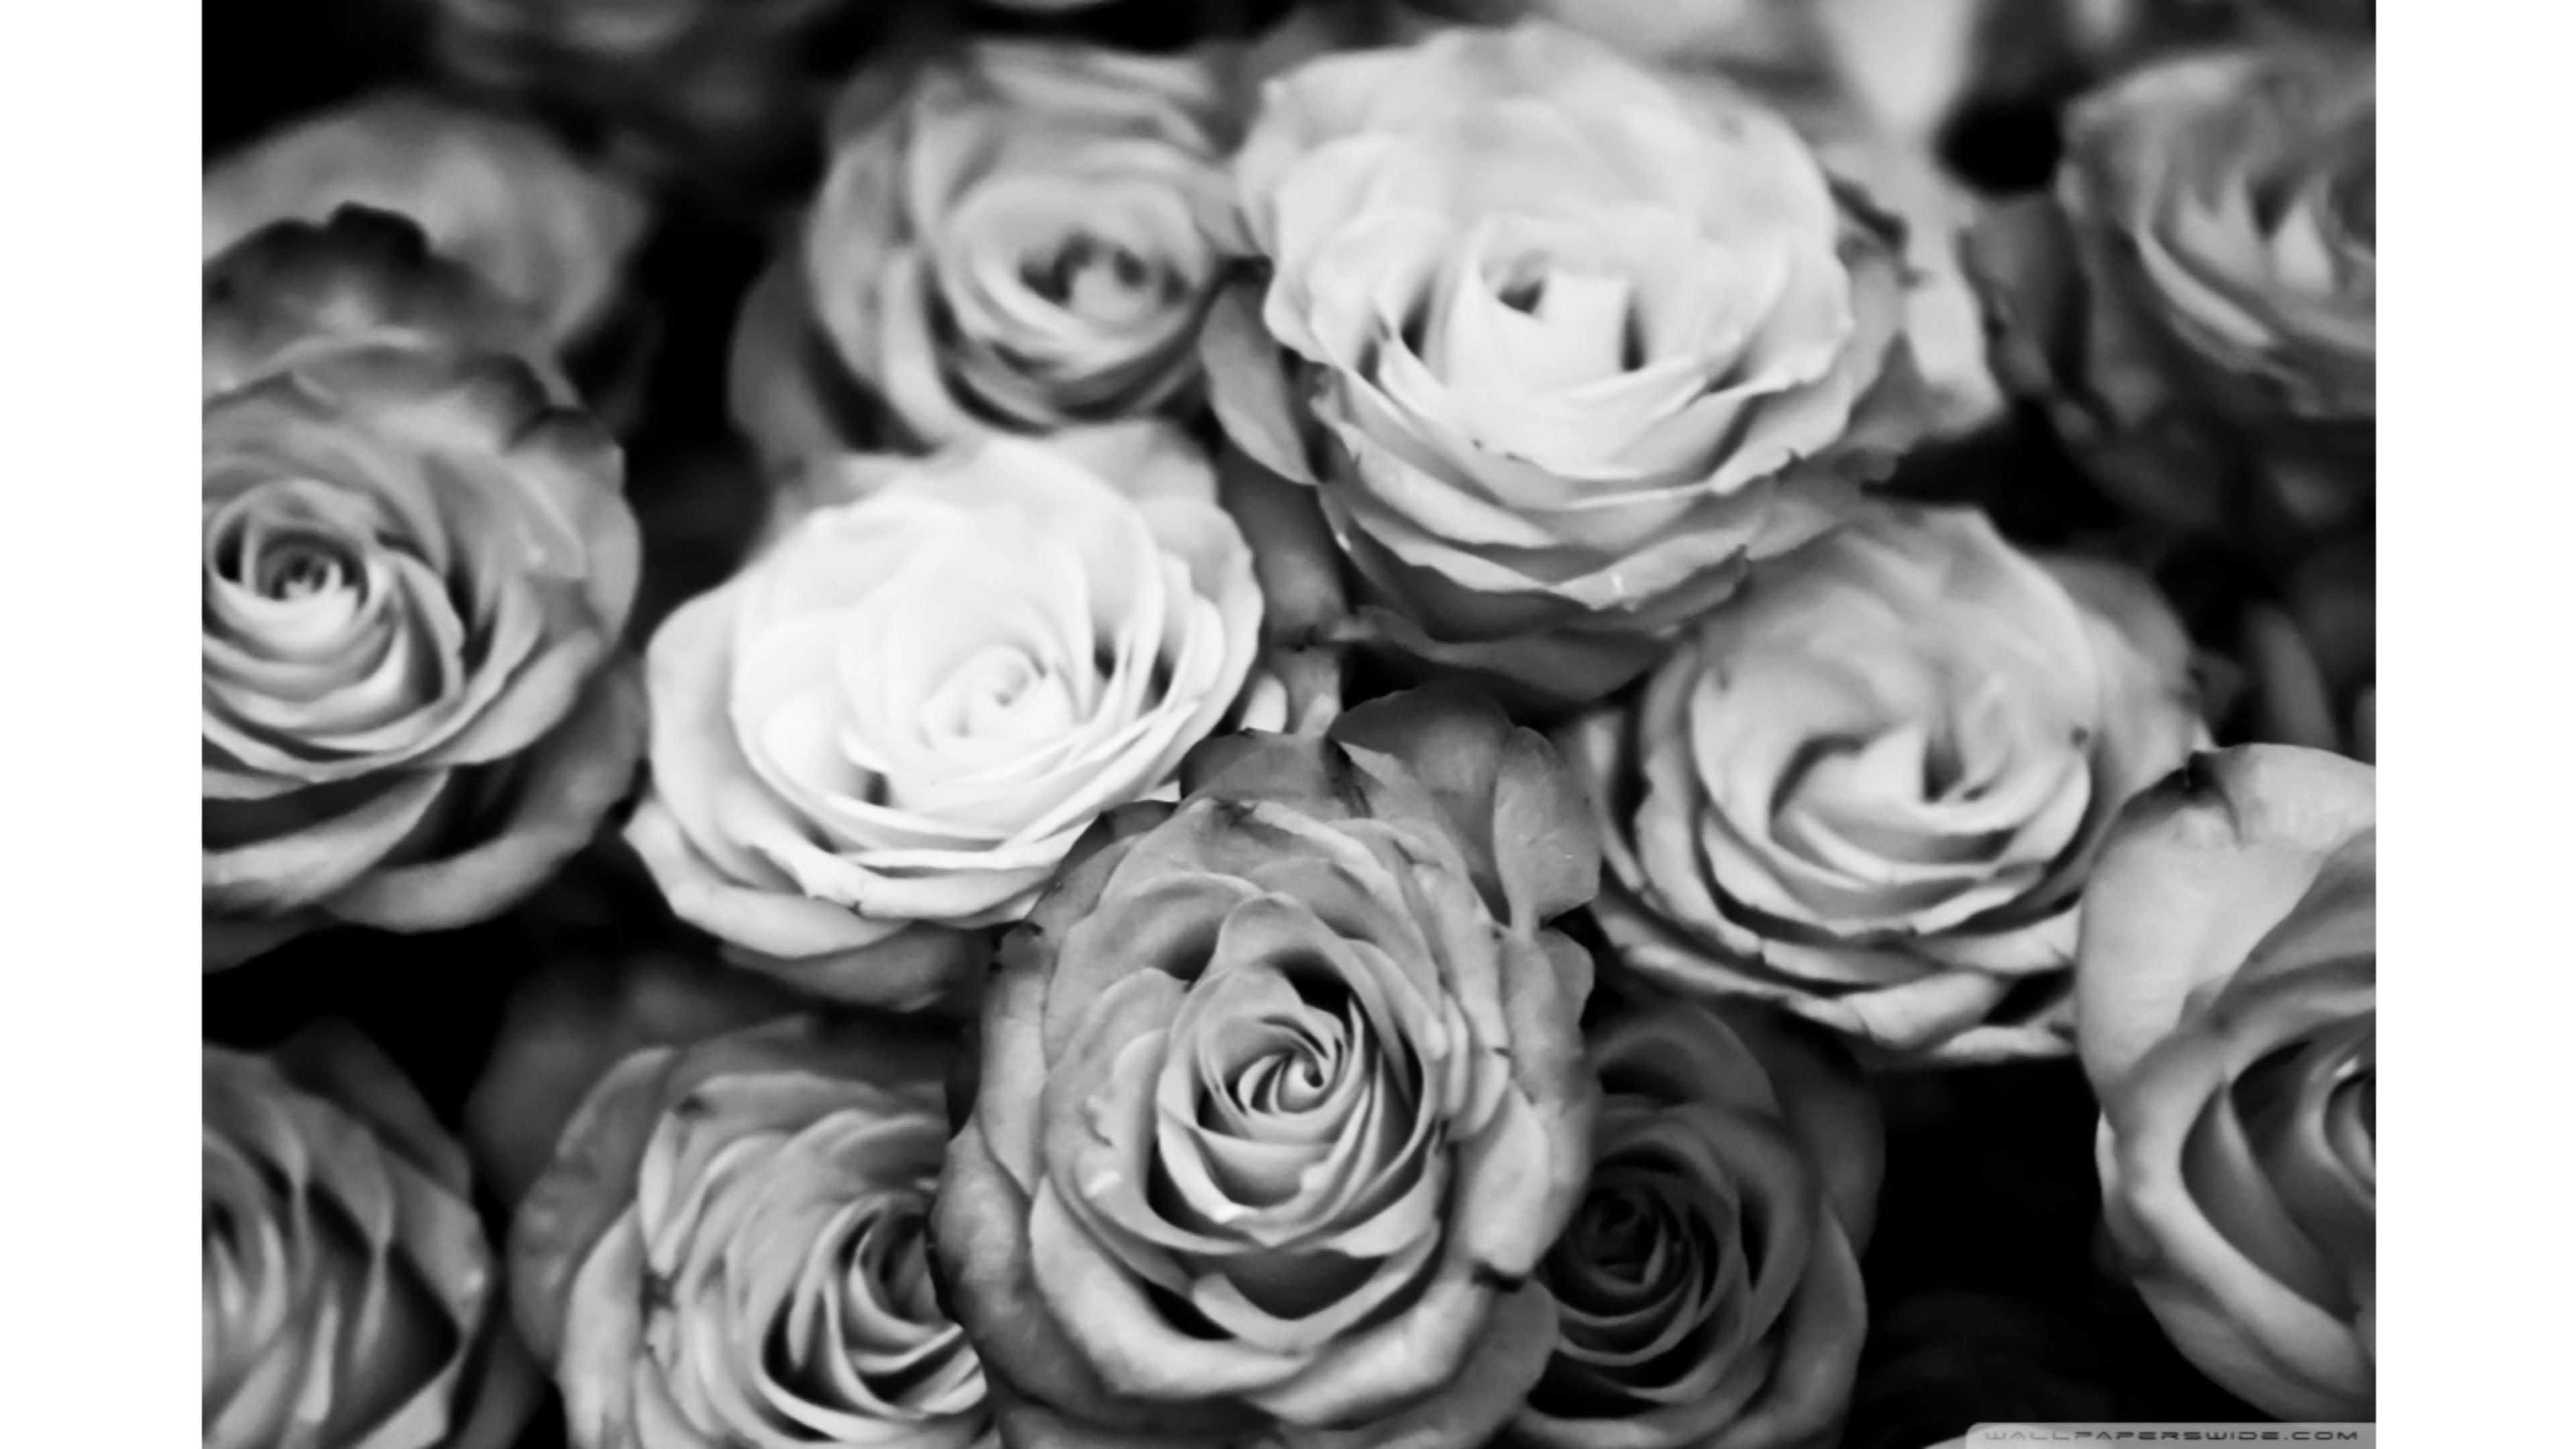 Black And White Roses Wallpaper 4k Jpg 3840 2160 Facebook Cover Images Facebook Cover Photos Flowers Facebook Cover Photos